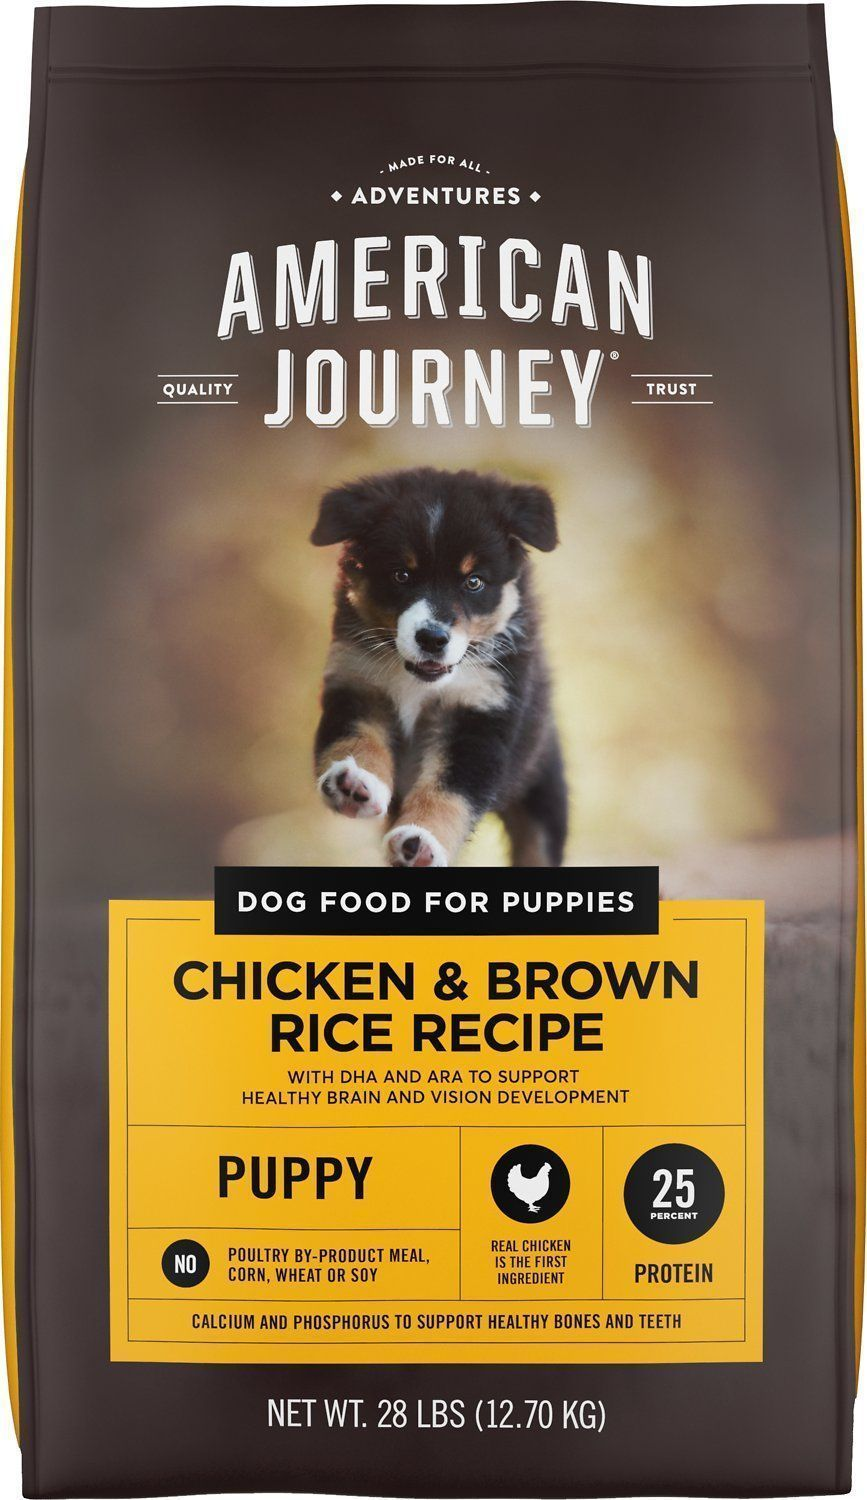 american journey chicken brown rice protein first recipe puppy dry dog food